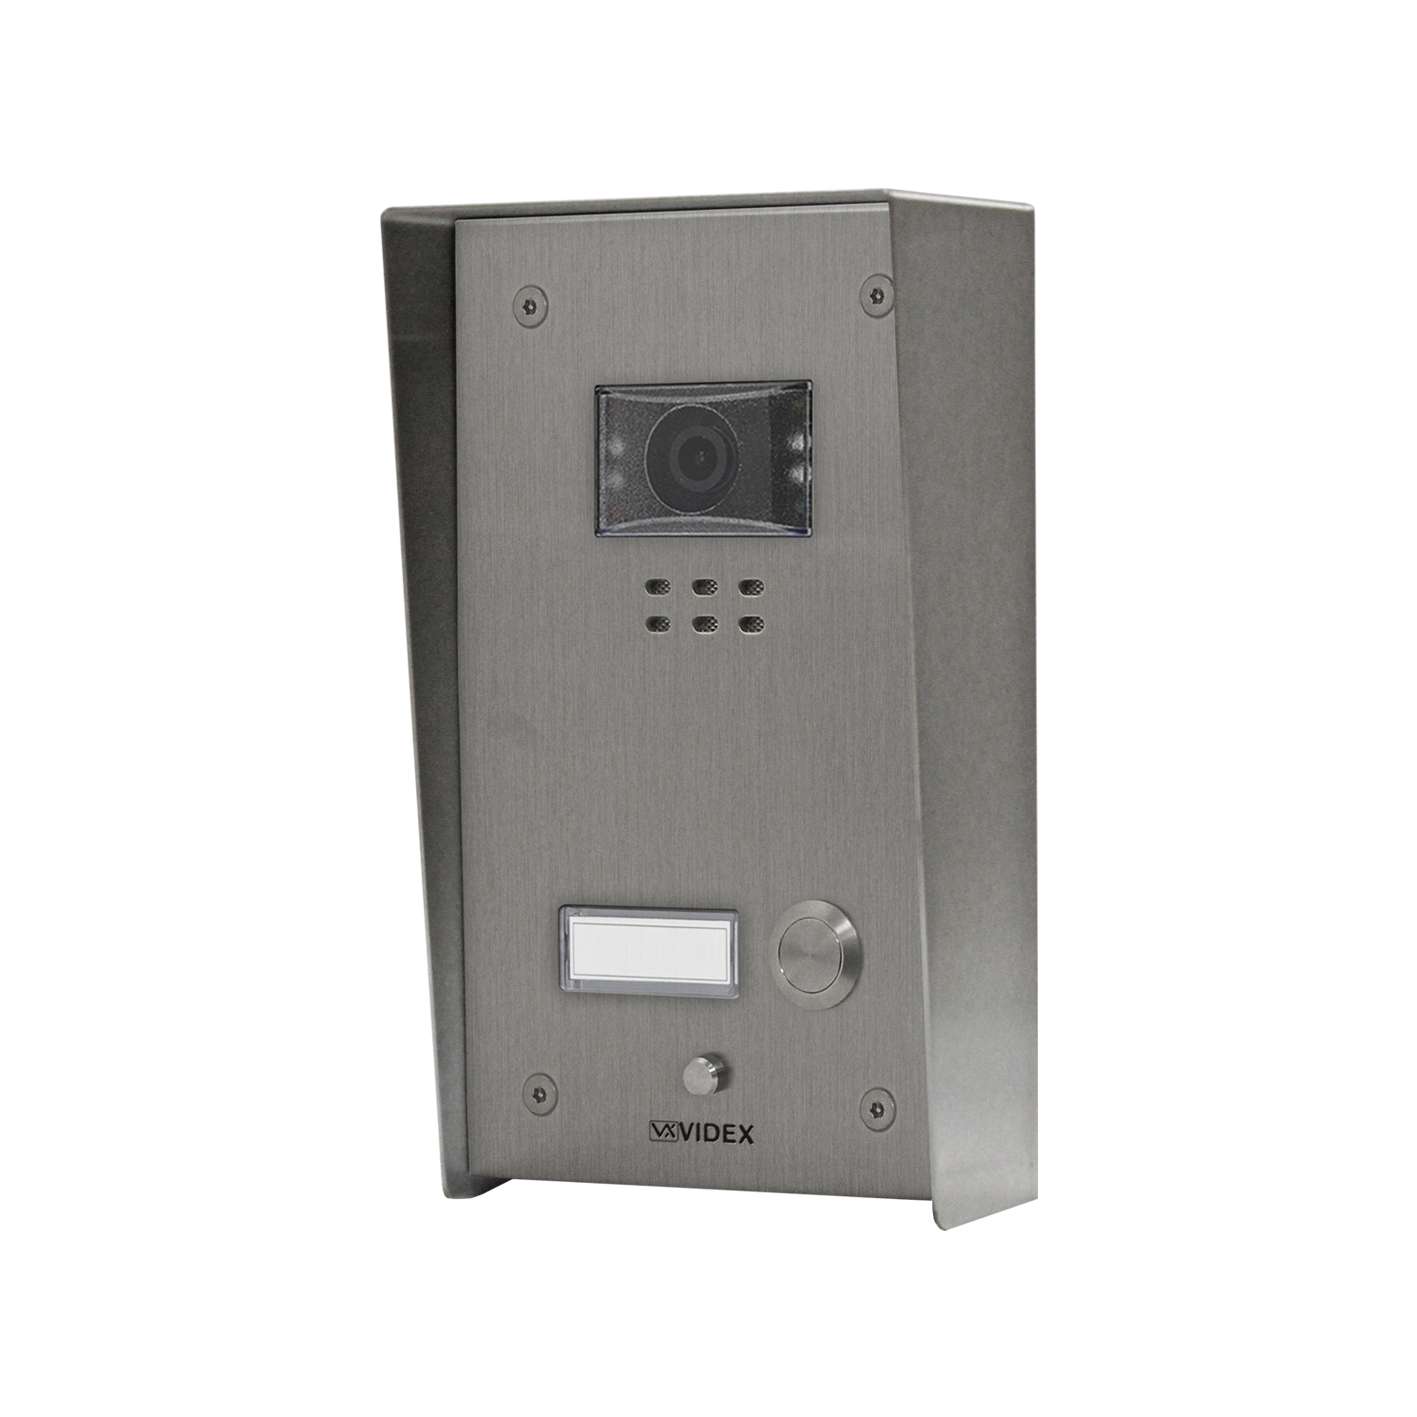 1 button with nameplate Vandal Resistant IP Colour Video Panel (surface)